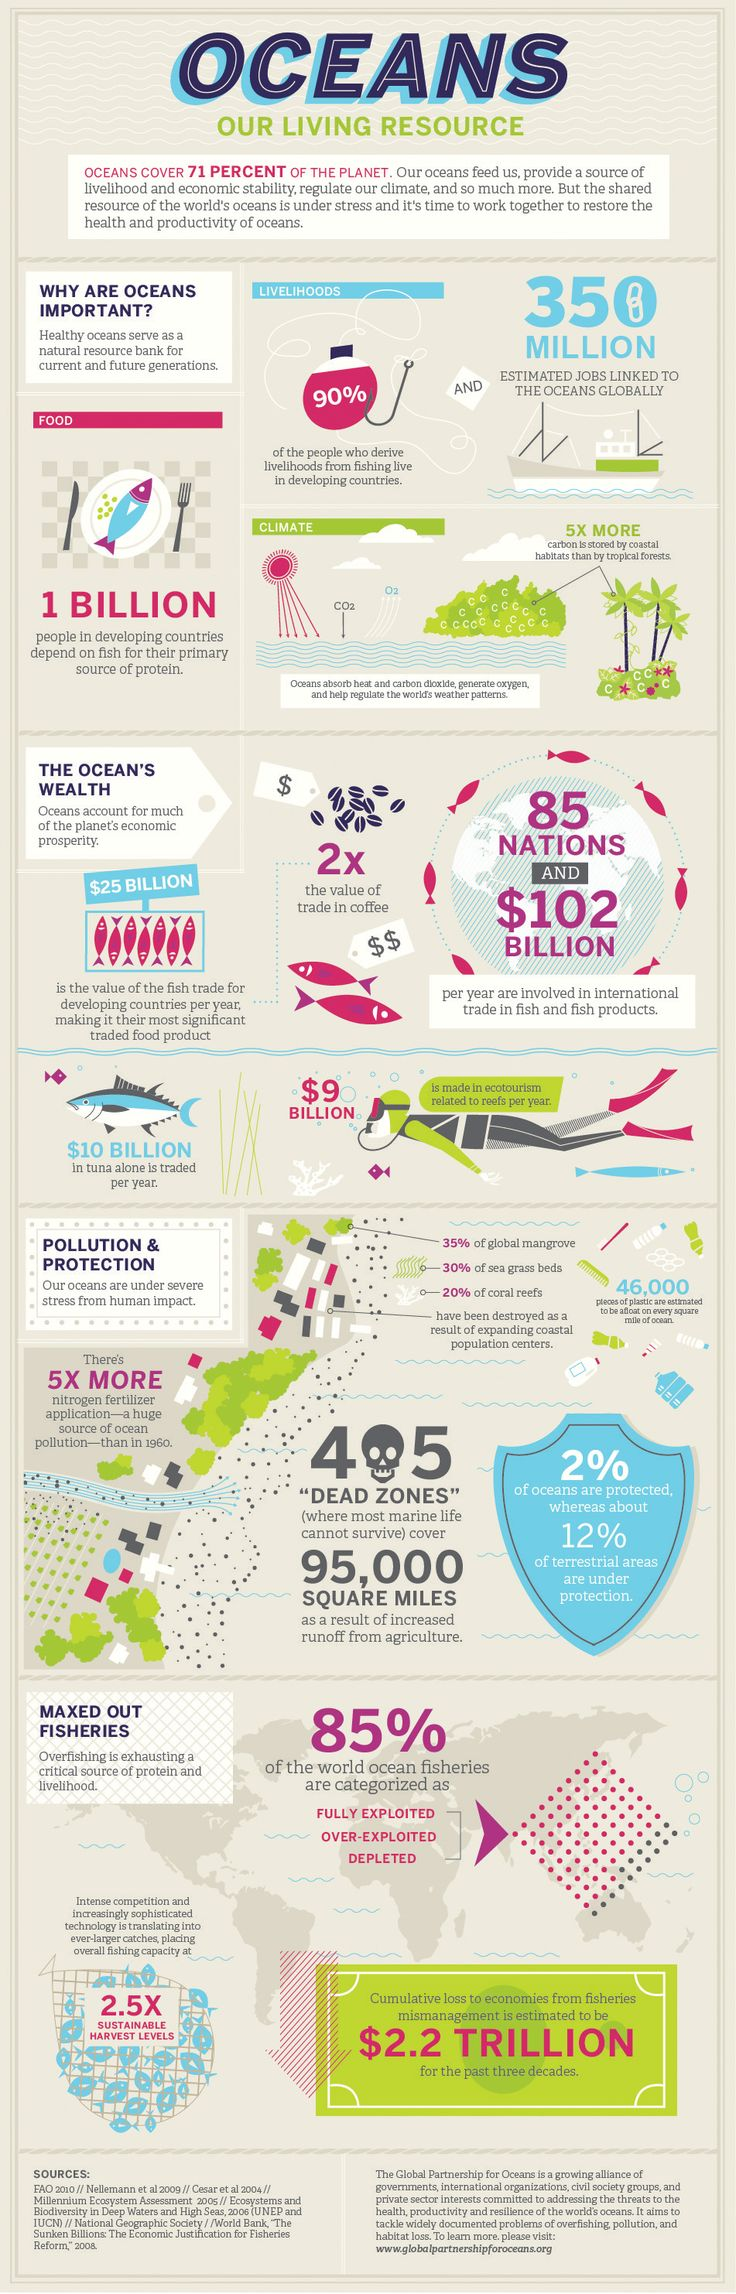 Oceans: Our Living Resource (Infographic) | Global Partnership for Oceans